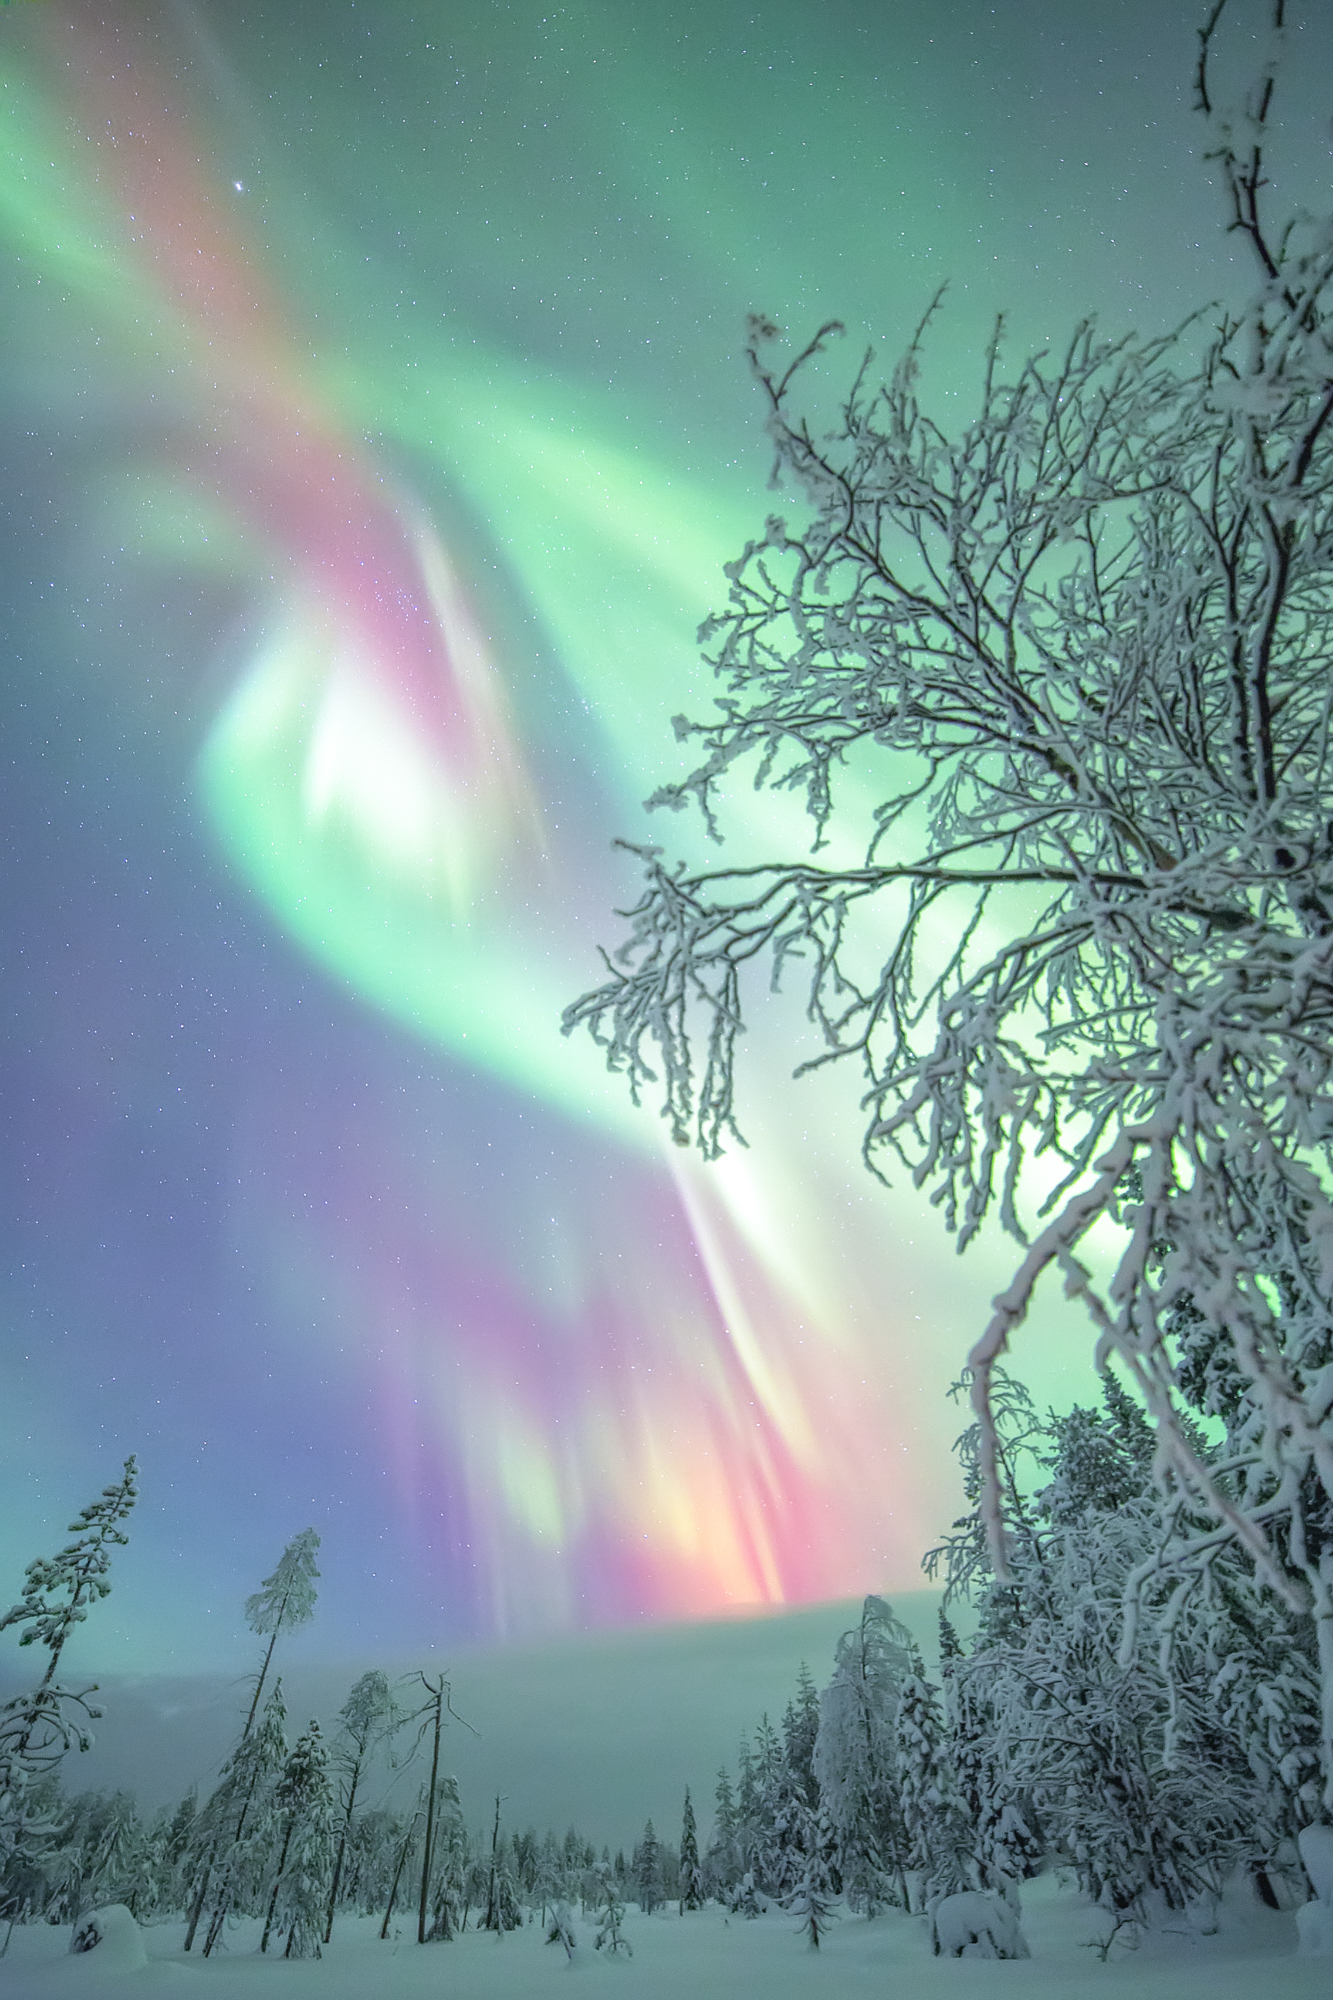 northern_lights_aurora_borealis_photo.jpg